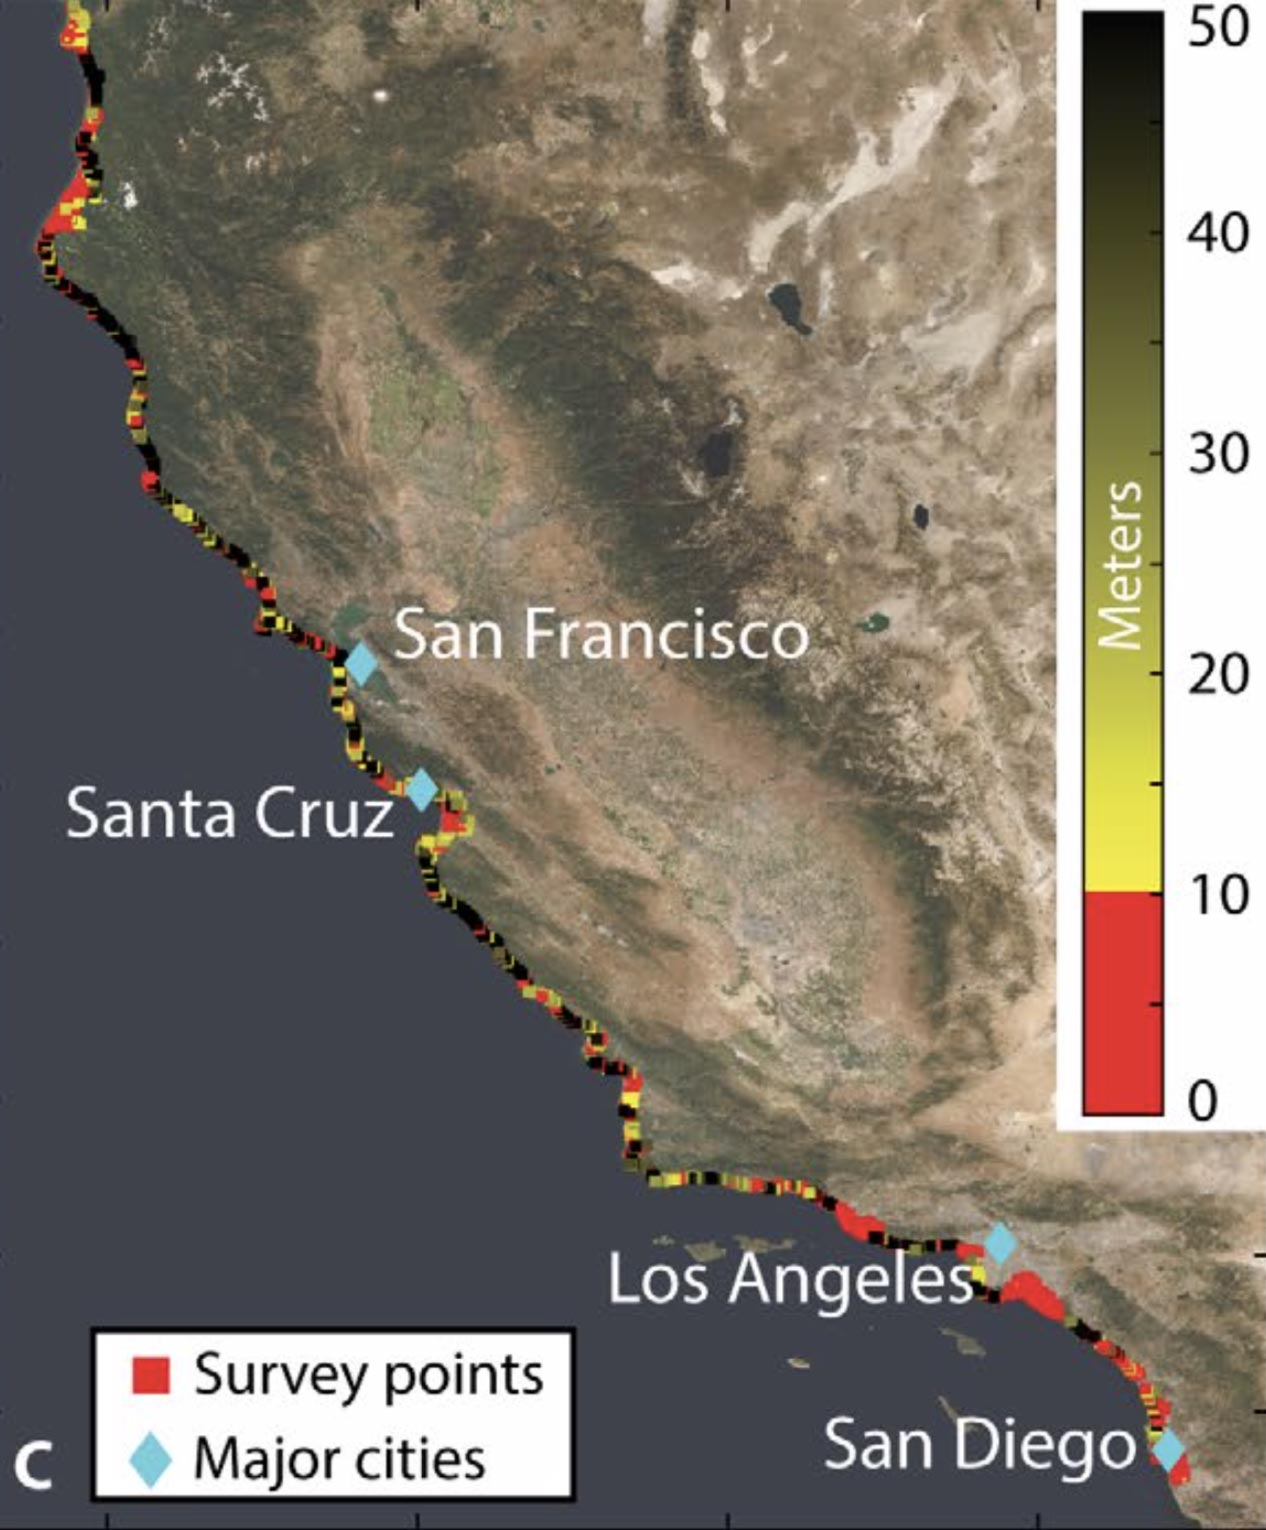 San Francisco, Monterey Bay, Los Angeles, and San Diego Majorly Affected